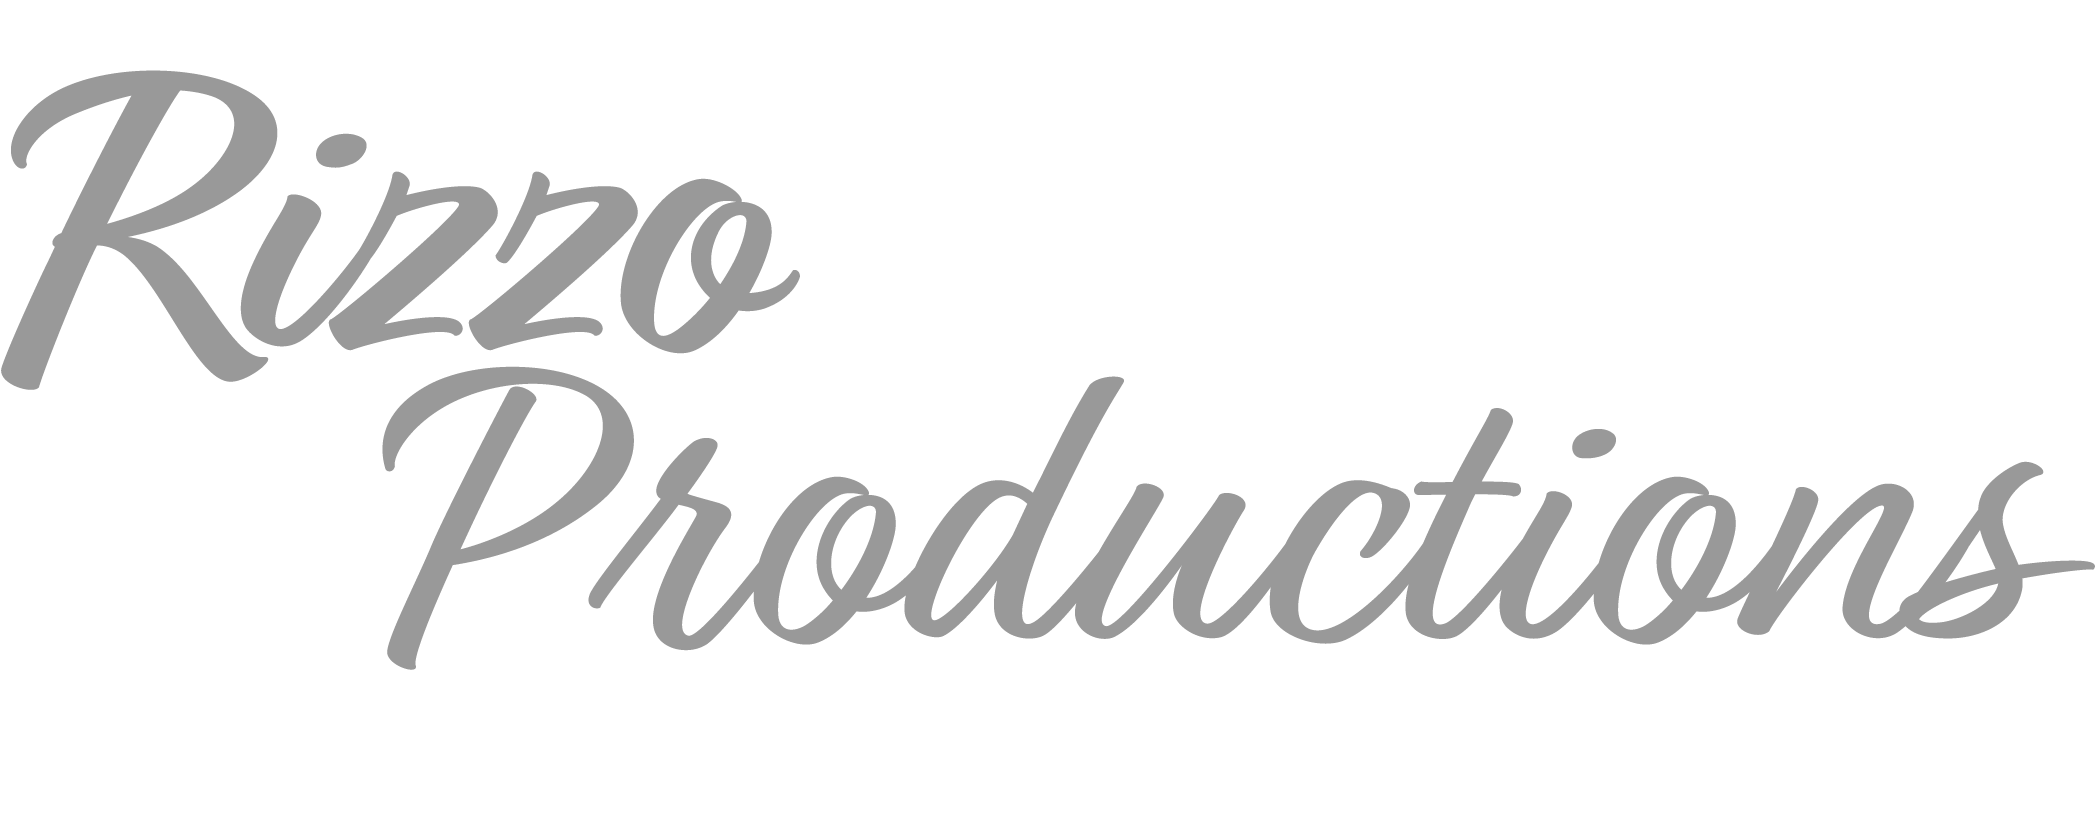 Rizzo Productions